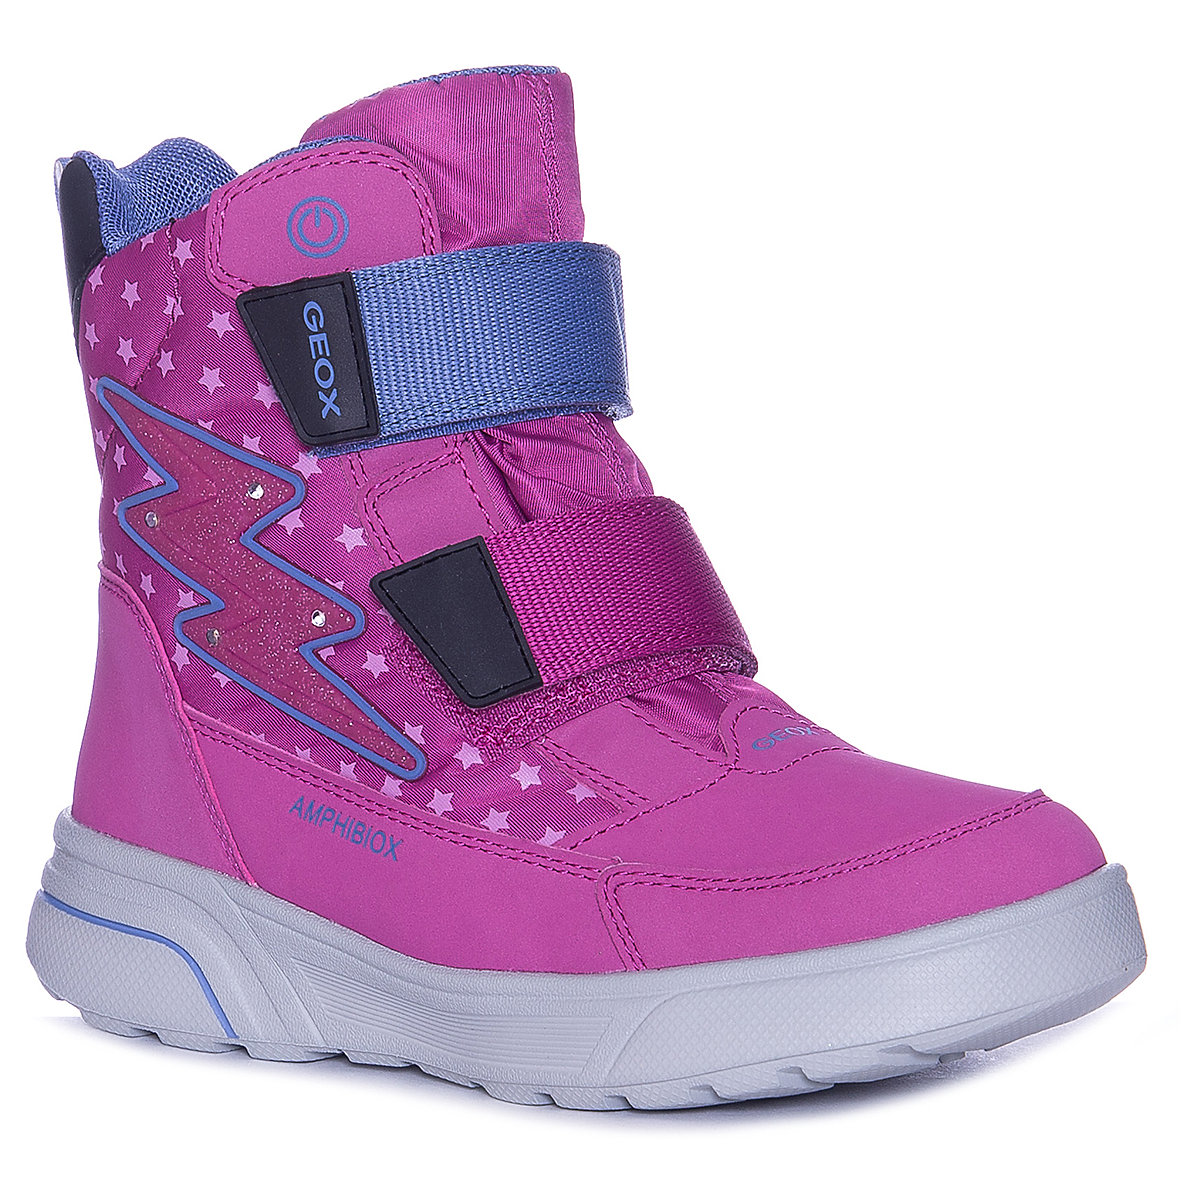 GEOX Boots 8786520 children shoes For girl Winter Girls faux fur